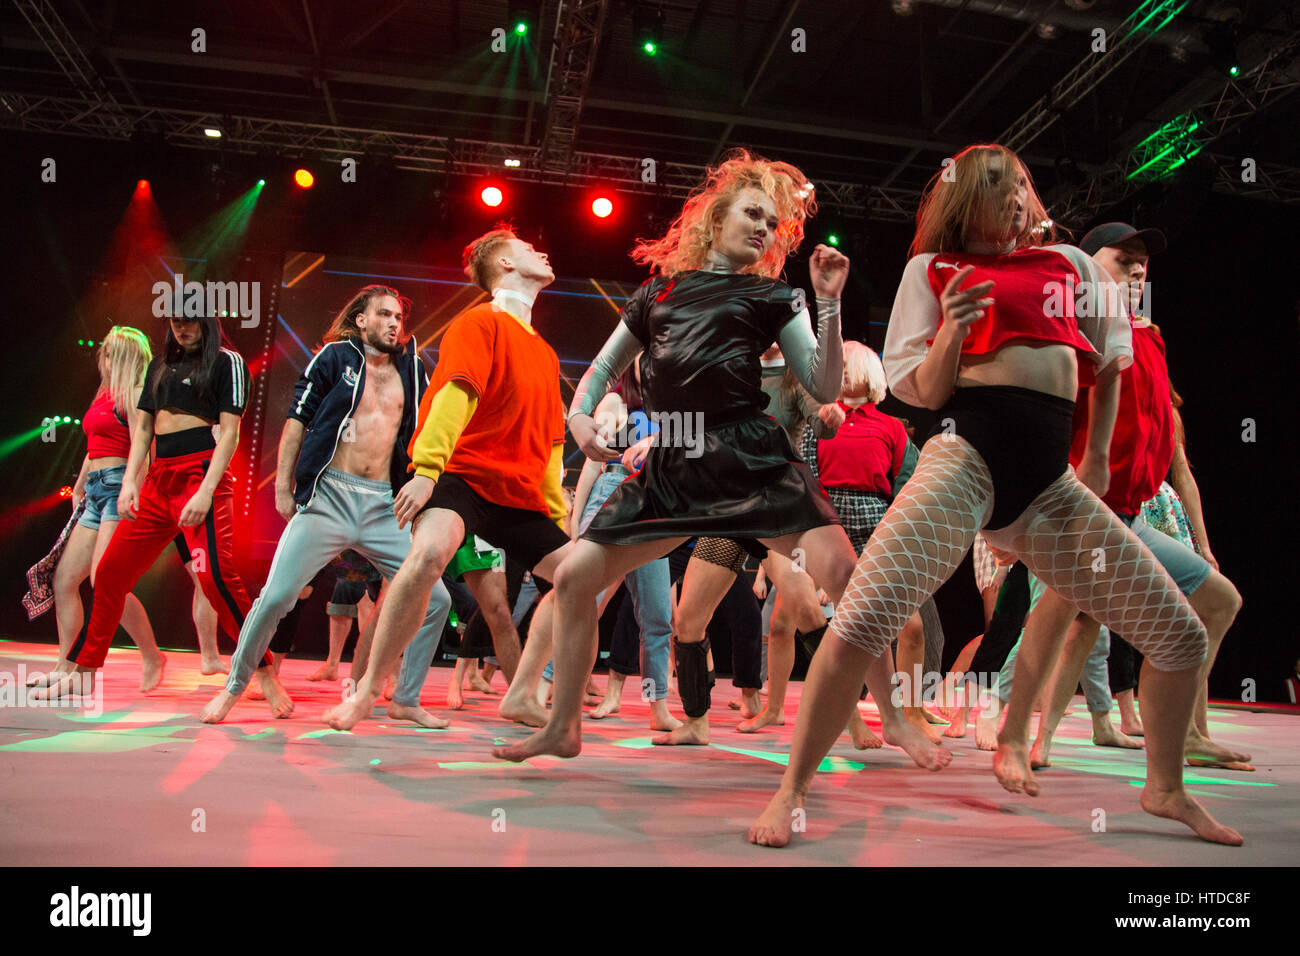 London, UK. 10th Mar, 2017. Masters Performing Arts perform on stage at MOVE IT, the UK's biggest dance event. - Stock Image